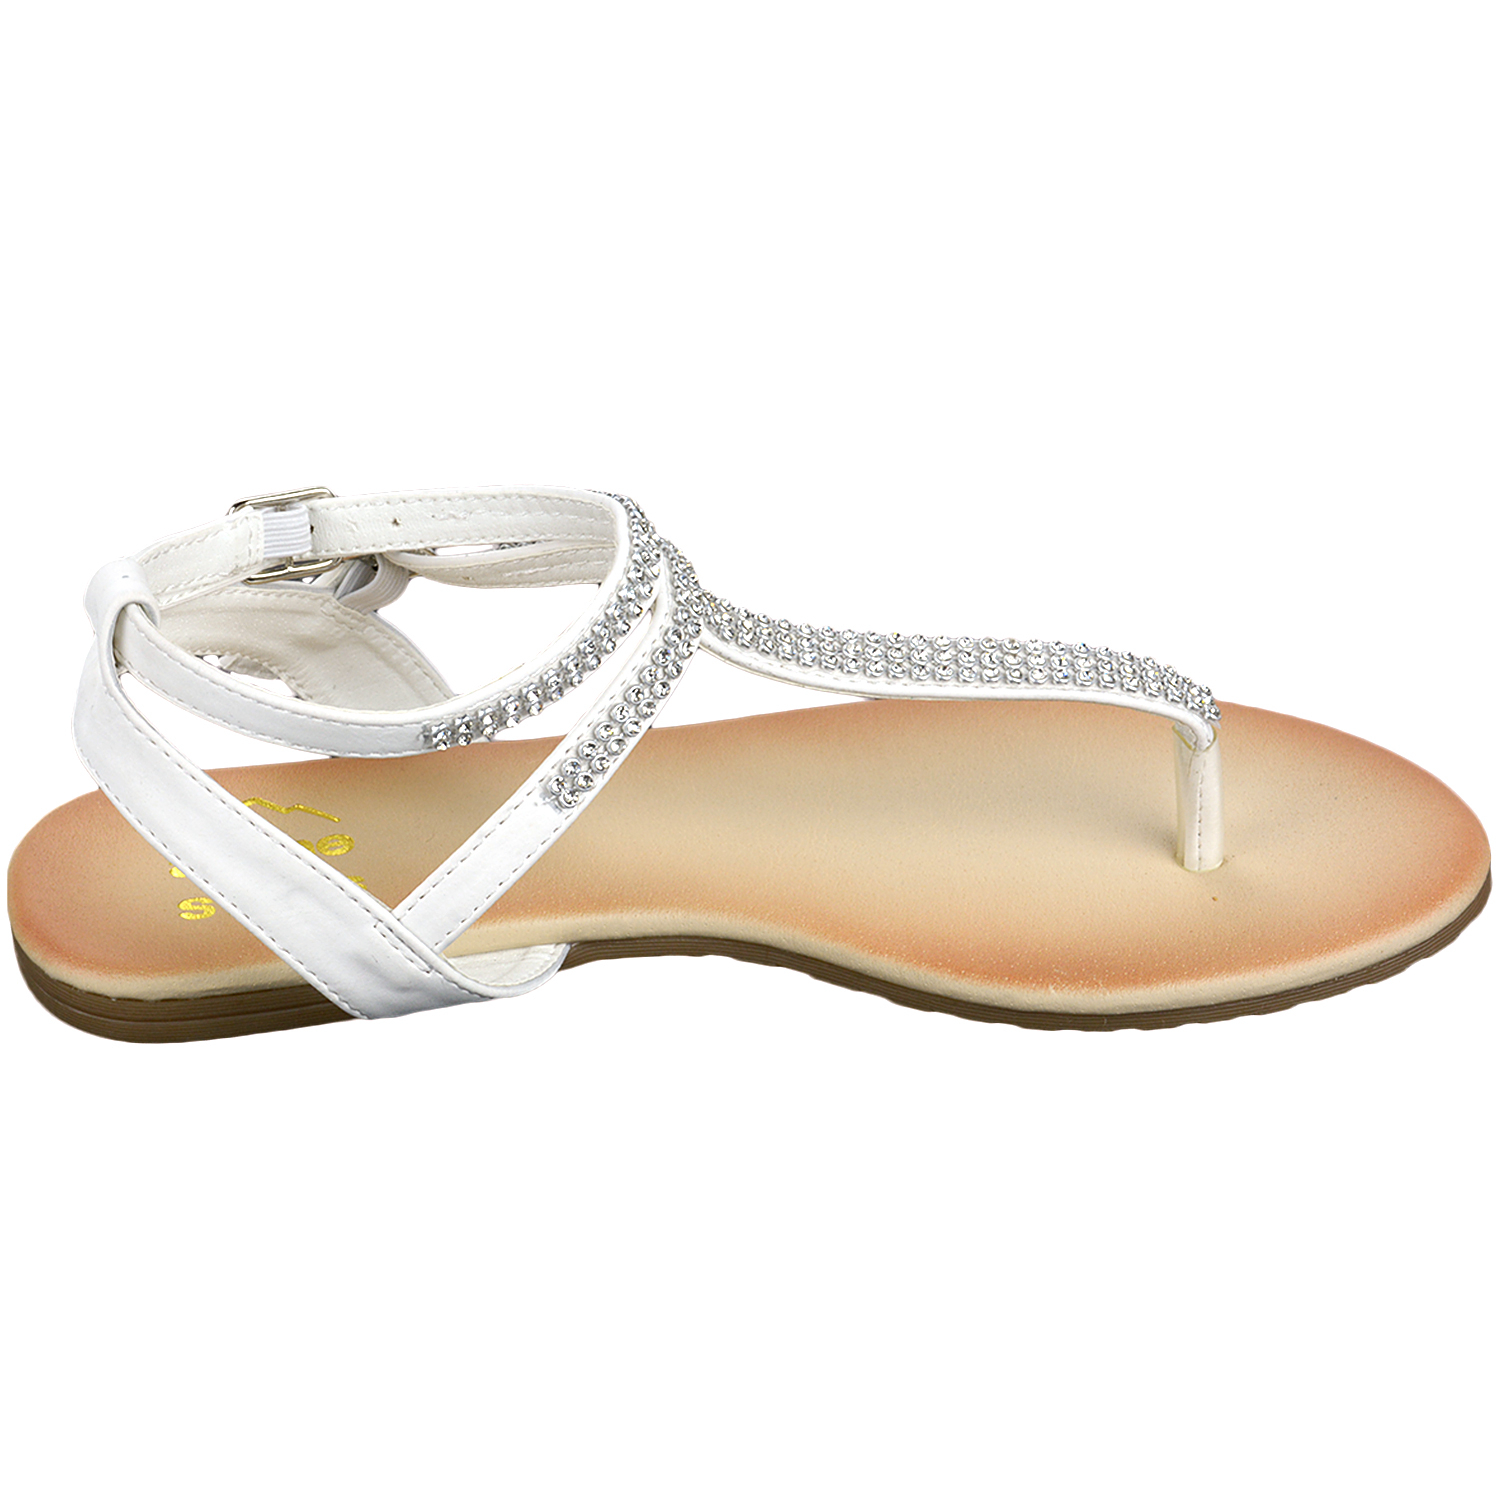 Alpine Swiss Women S Gladiator Sandals T Strap Slingback